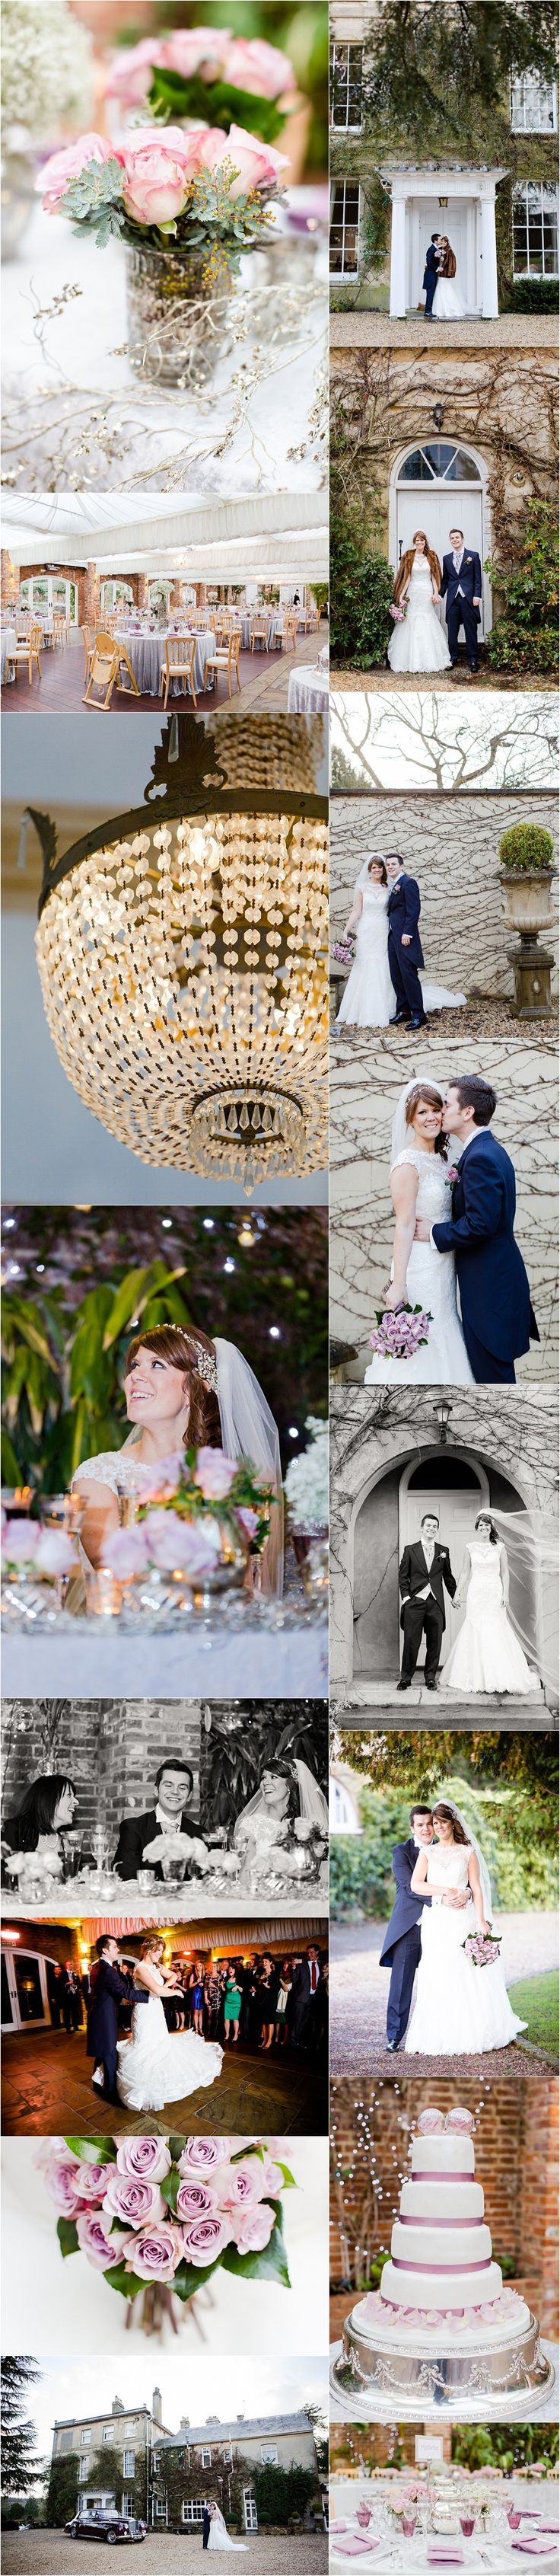 Wedding Photography | Northbrook Park Surrey | At Home catering | Credit: Eddie Judd Photography